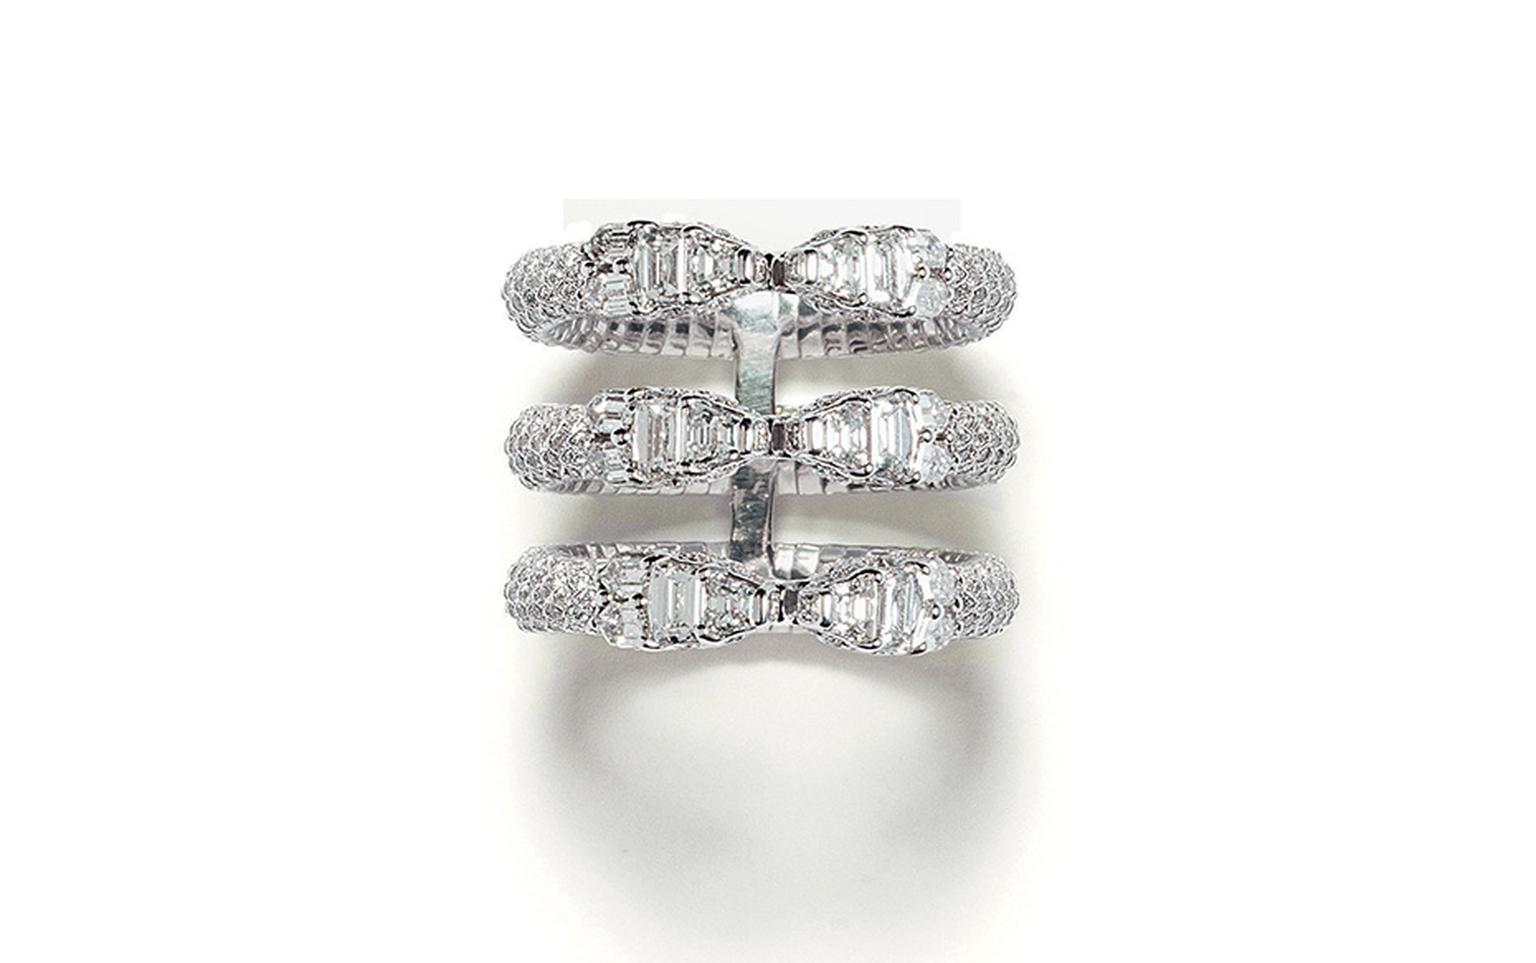 Repossi Ophydienne ring in white gold fully set with diamonds.